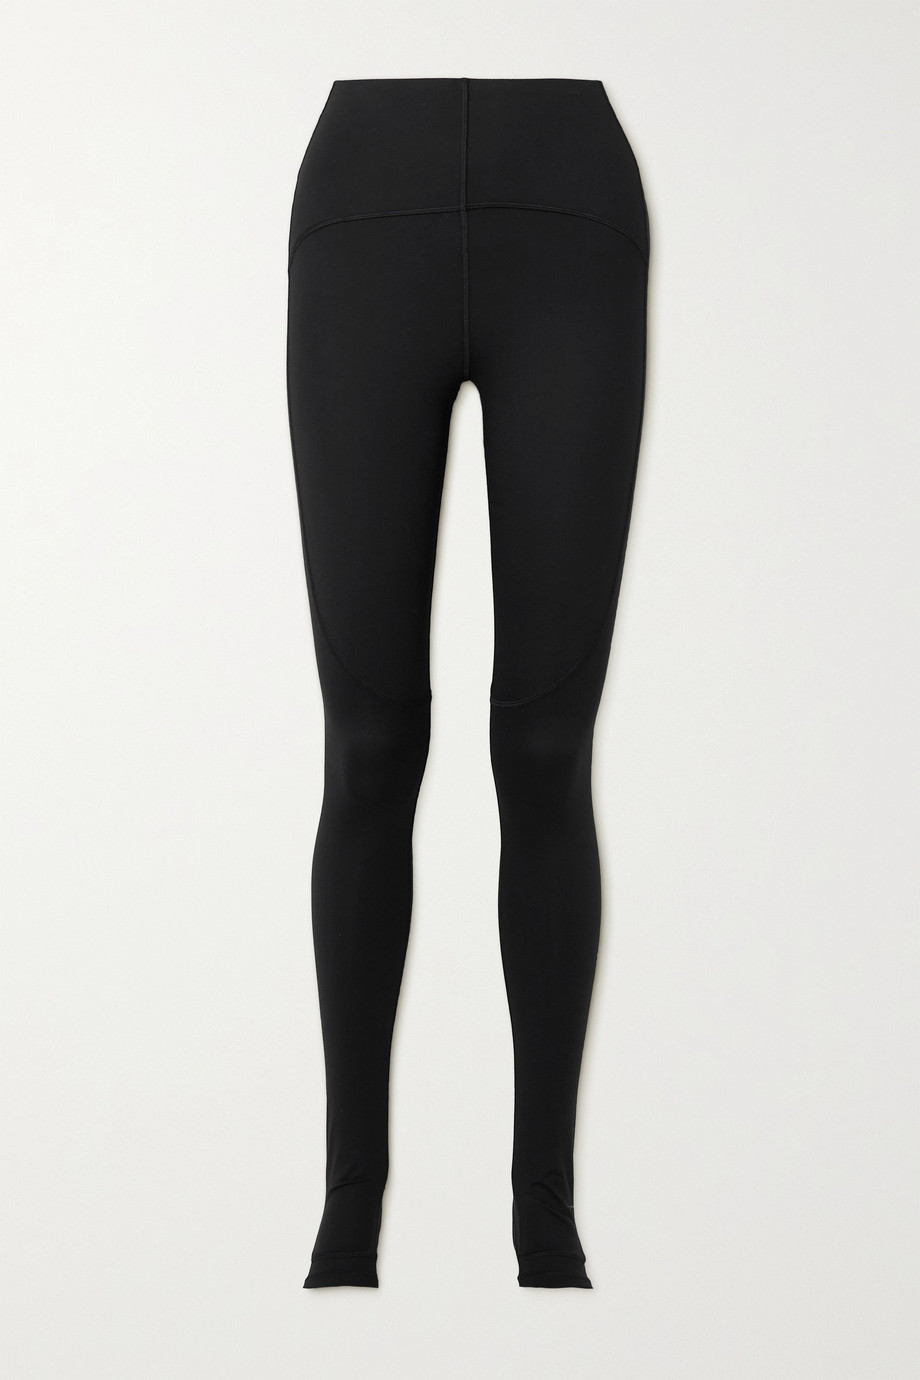 ADIDAS BY STELLA MCCARTNEY TrueStrength perforated recycled Primeblue leggings